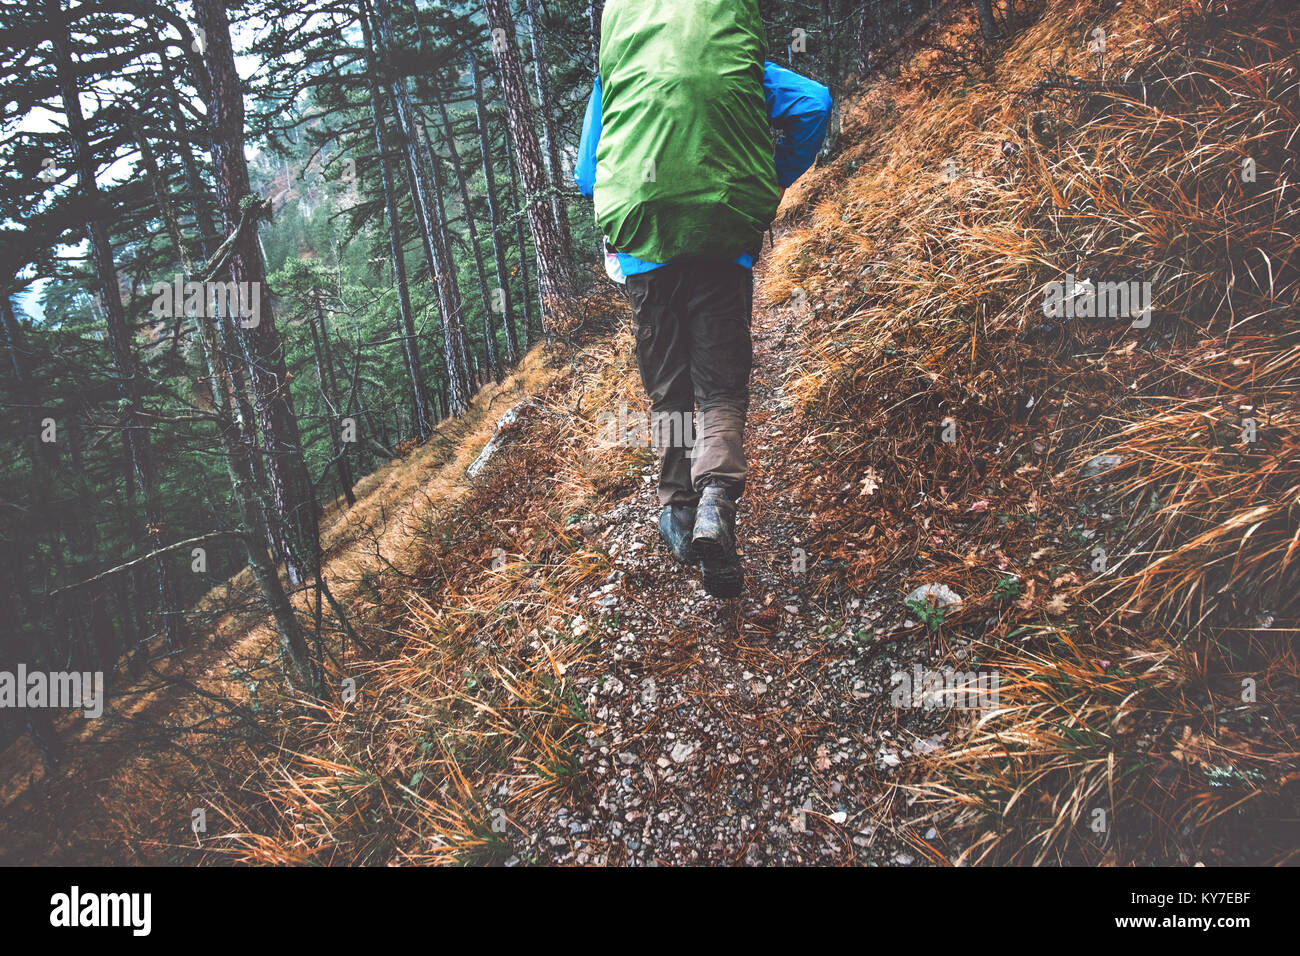 Backpacker hiking in forest landscape Travel Lifestyle concept adventure active vacations outdoor into the wild - Stock Image